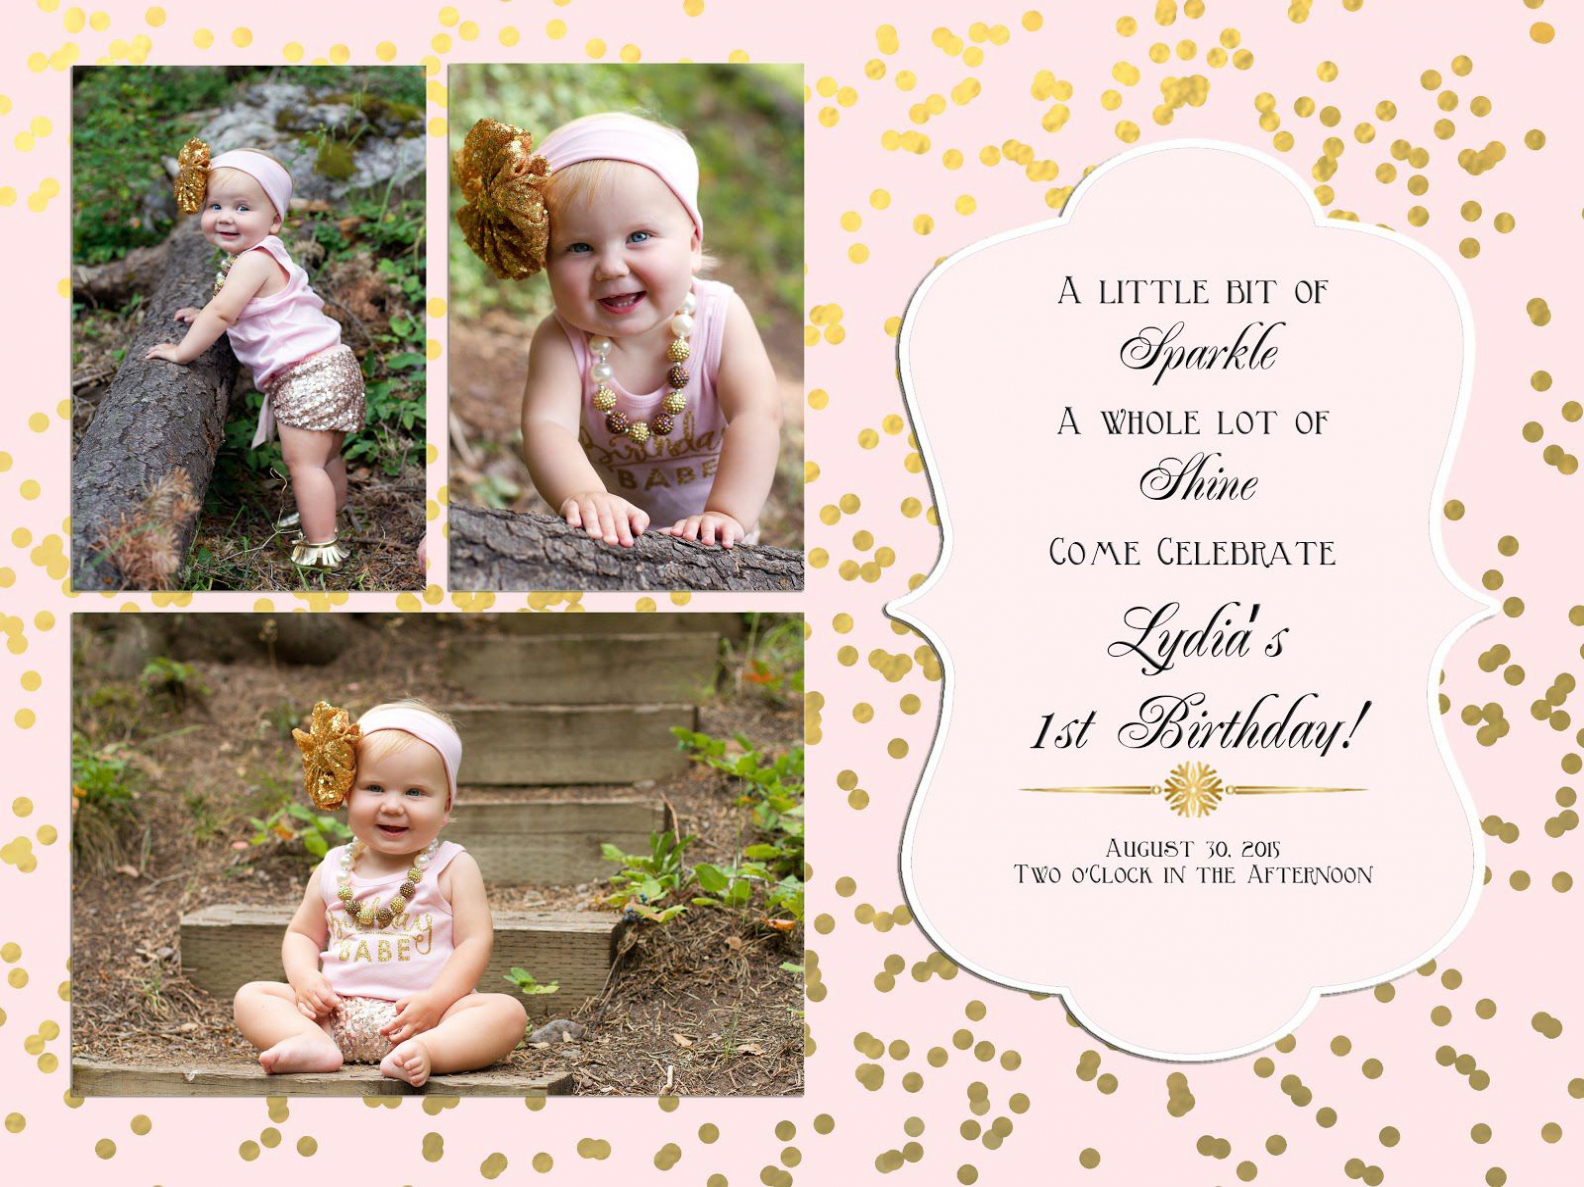 1st birthday invitation templates photoshop ; birthday-invitation-template-birthday-invitation-templates-birthday-invitation-templates-photoshop